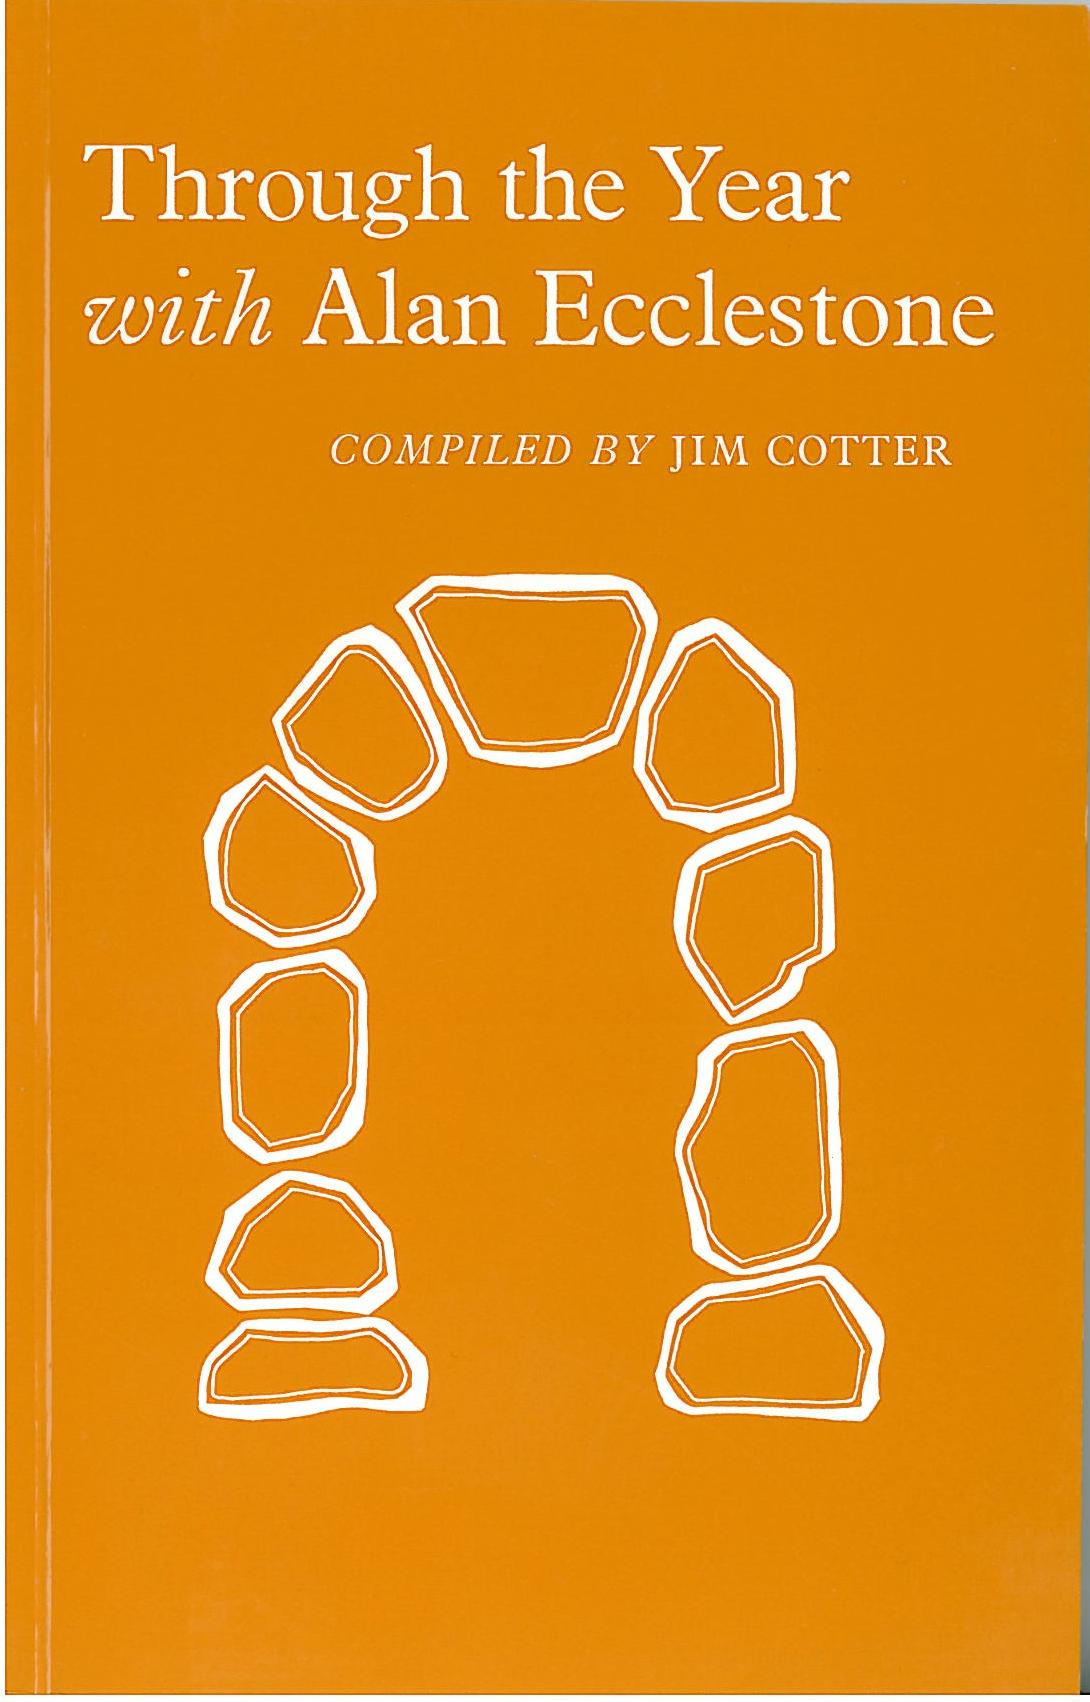 Through the Year with Alan Ecclestone